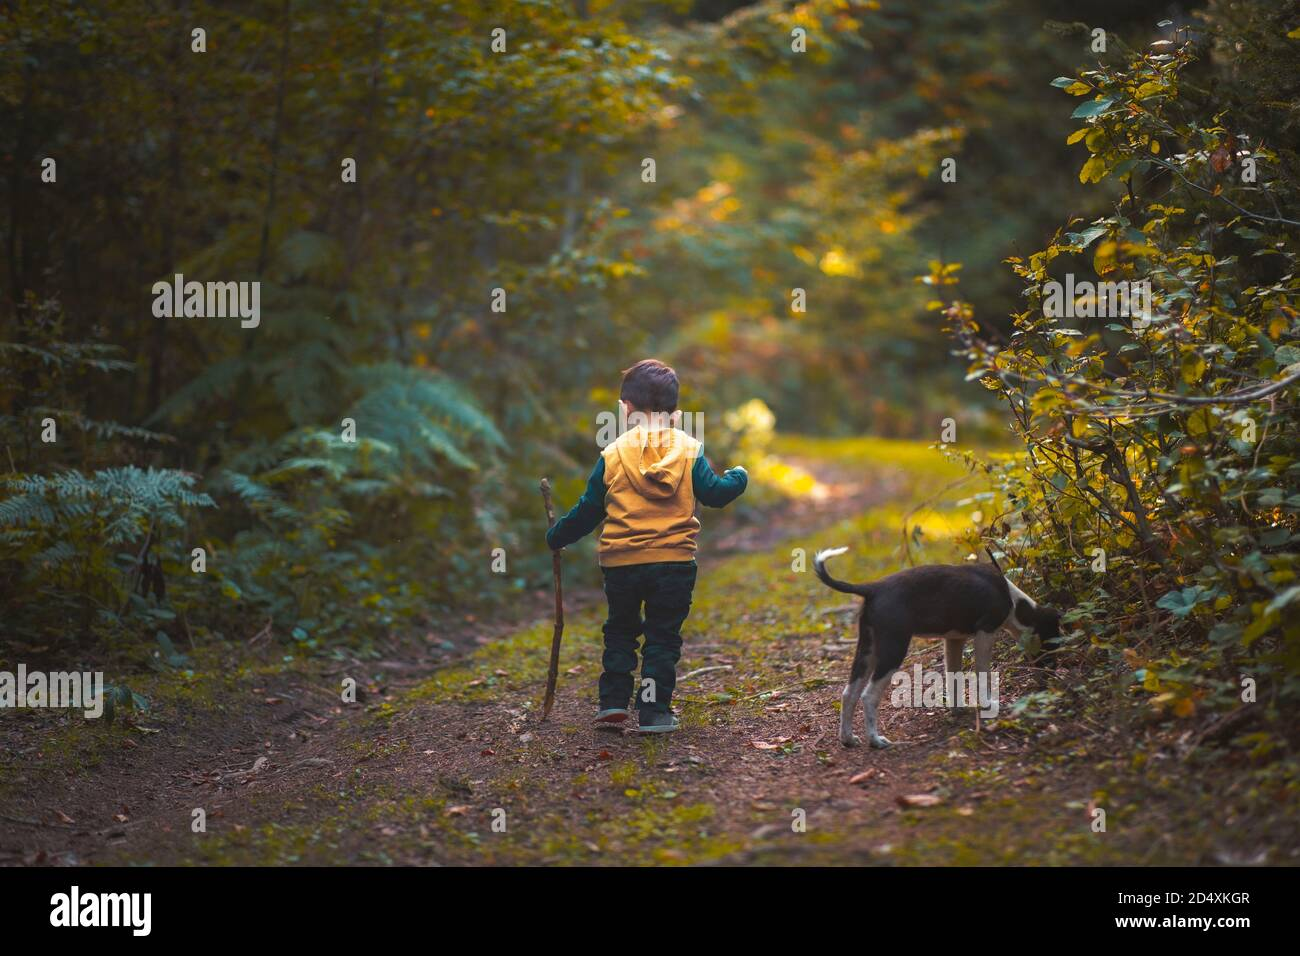 a small boy walking on a path with a dog in a forest autumun season Stock Photo